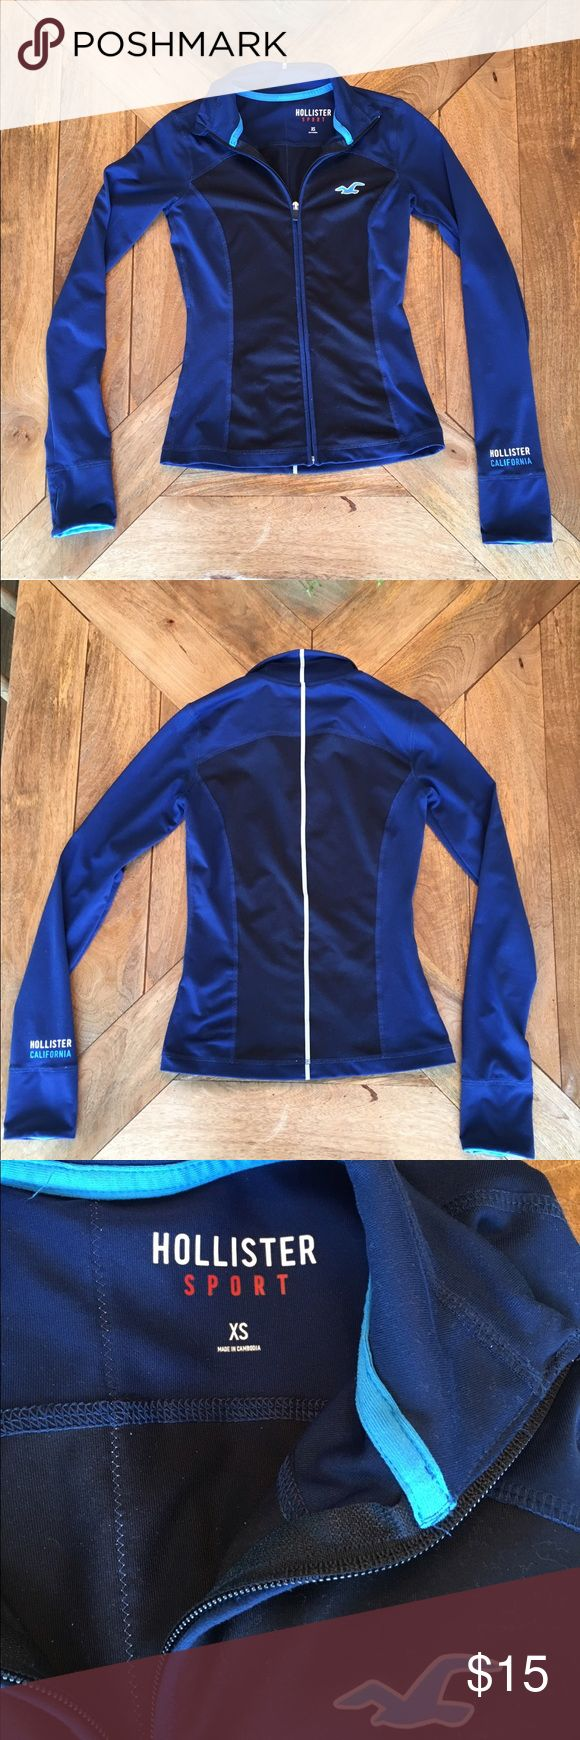 Hollister Track/Jogging Jacket Like new condition, perfect athletic wear for any outdoor activities. Light enough for carrying but provides sufficient warmth when it's brisk out. Hollister Jackets & Coats